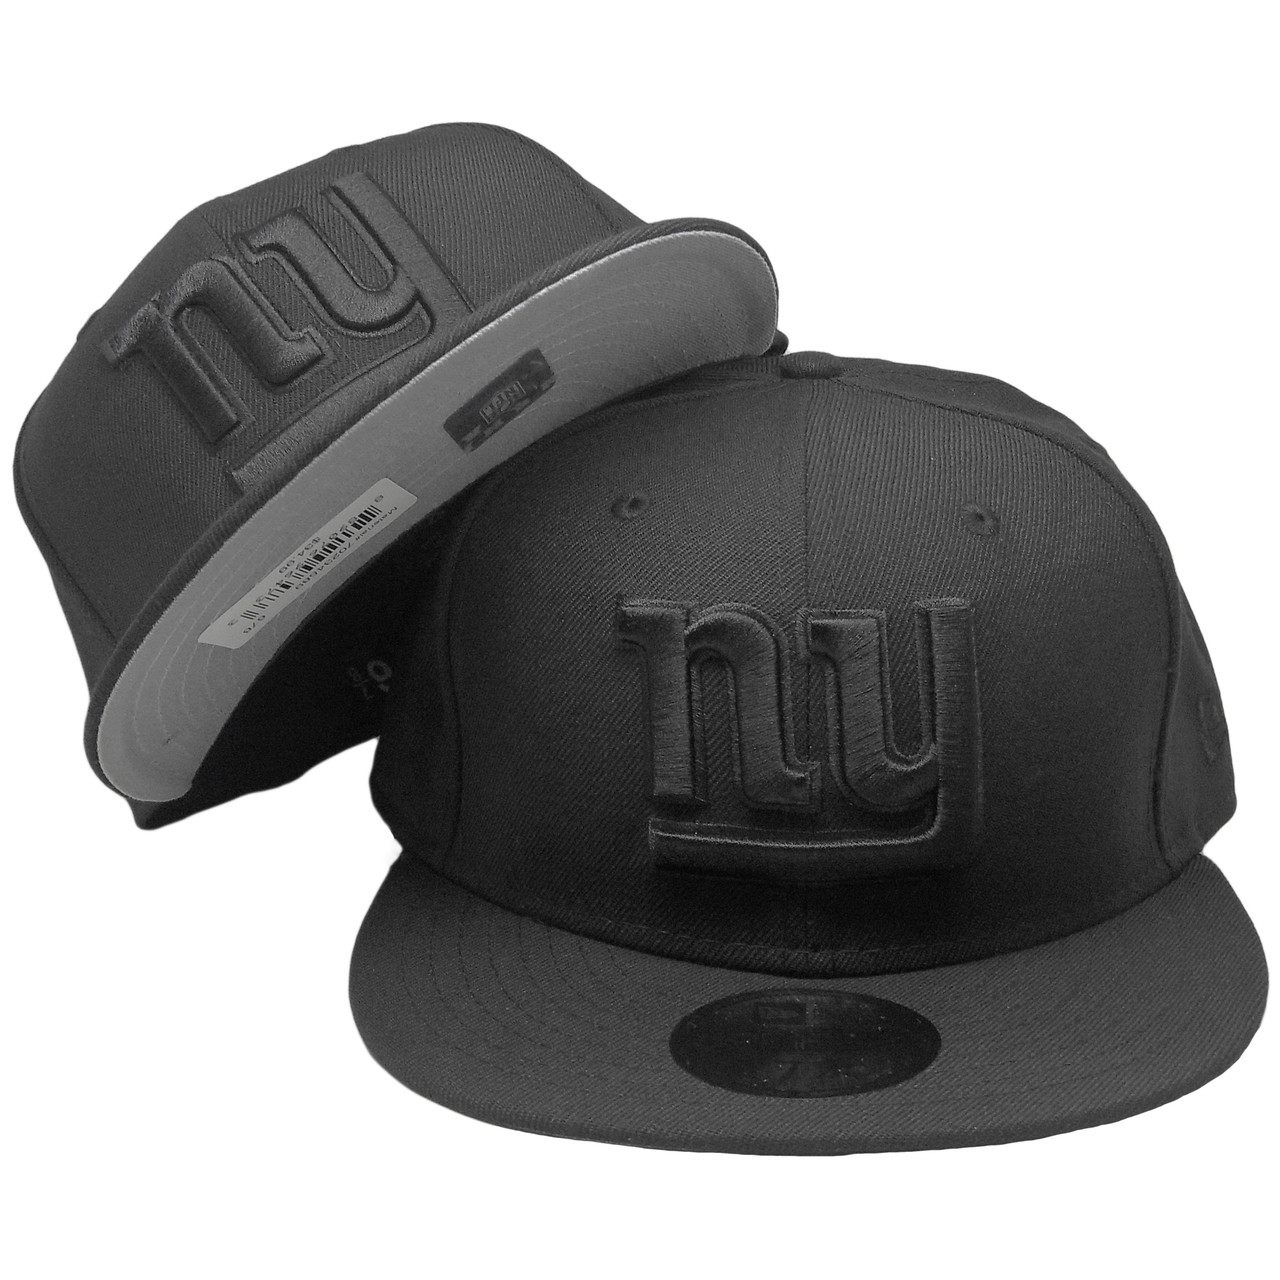 5caaa7df7c9 New York Giants New Era Custom 59Fifty Fitted Hat - All Black ...